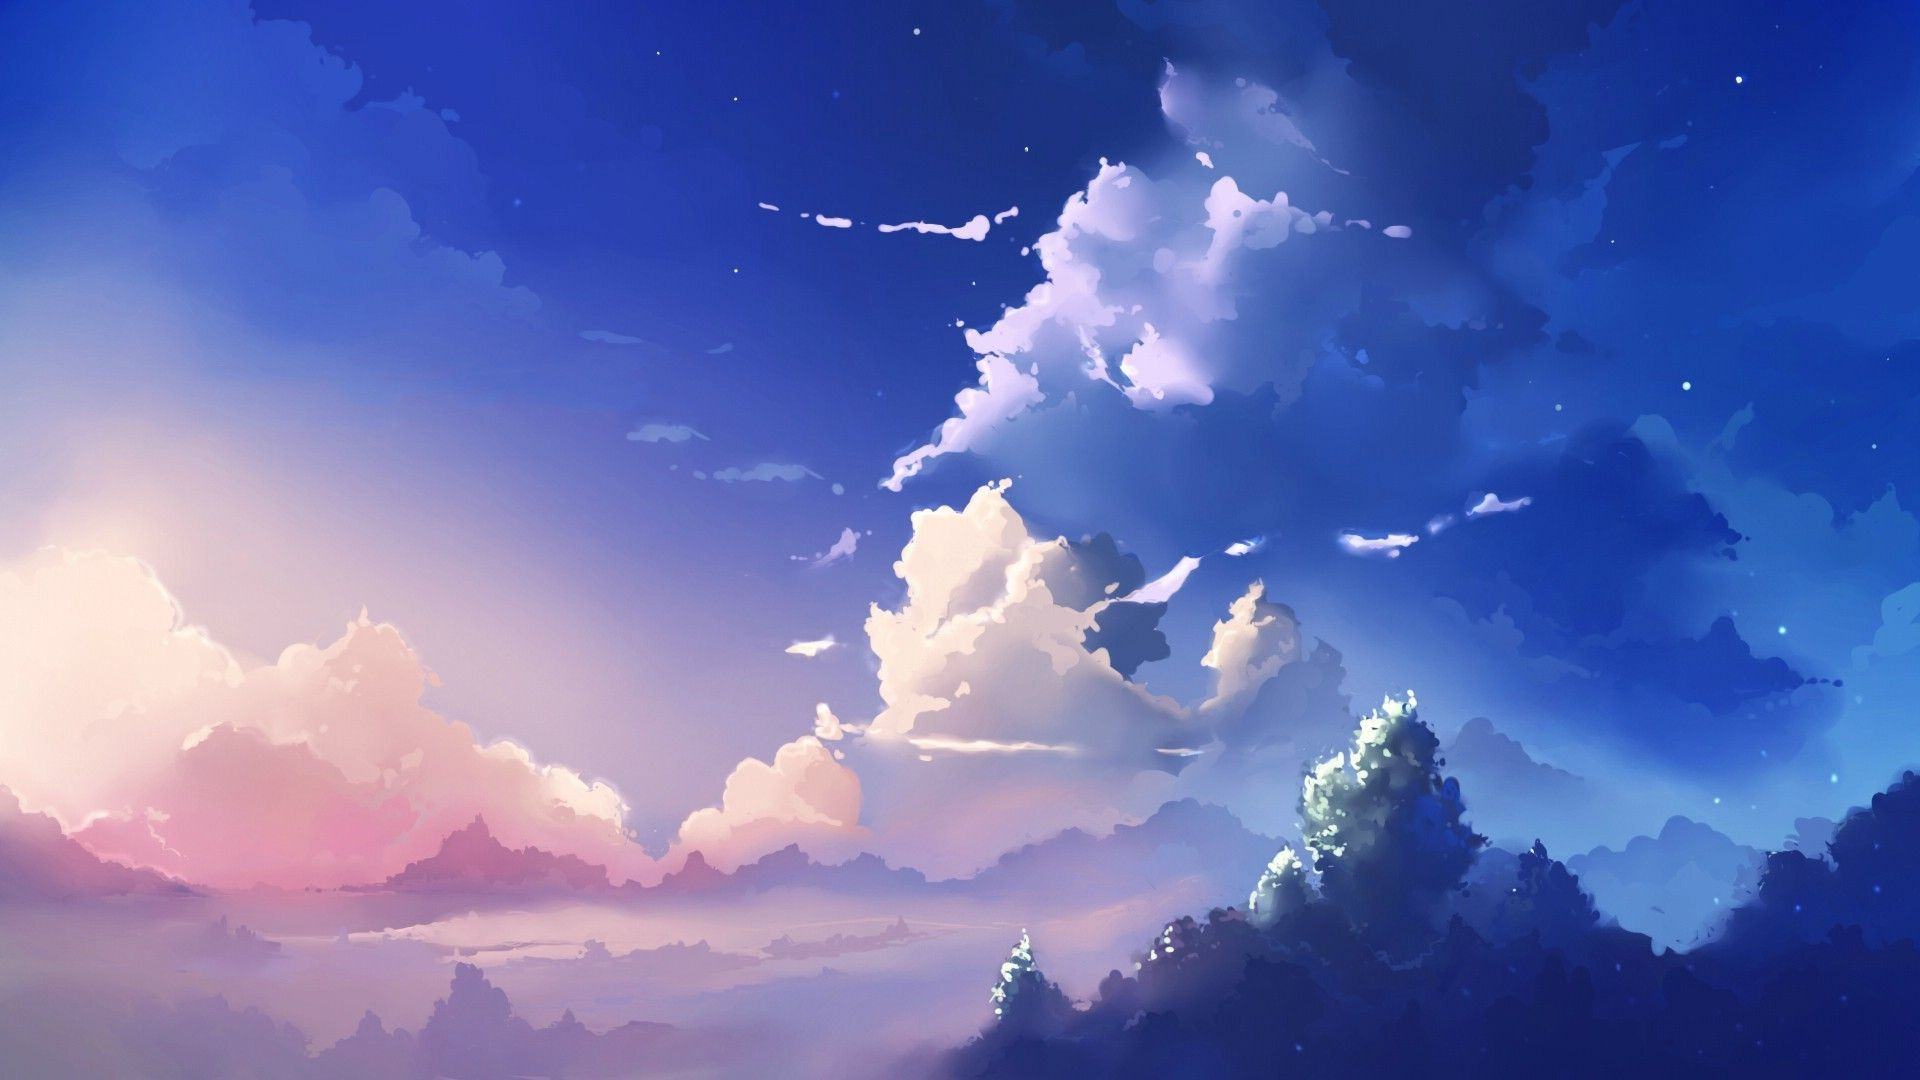 Background Anime 81 Pictures In 2020 Anime Scenery Wallpaper Anime Backgrounds Wallpapers Anime Scenery